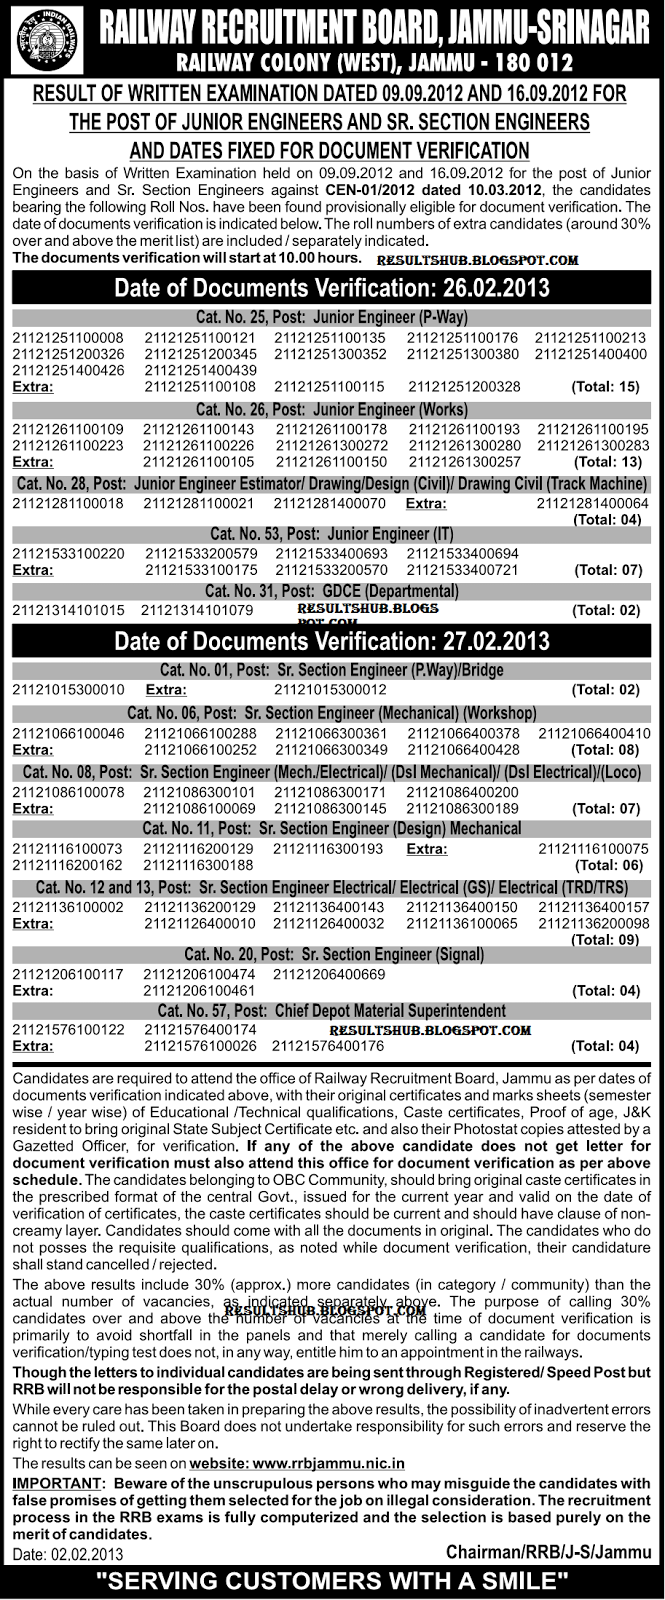 : Jammu-Srinagar Railway Recruitment Board (RRB) Result 2012 - 2013